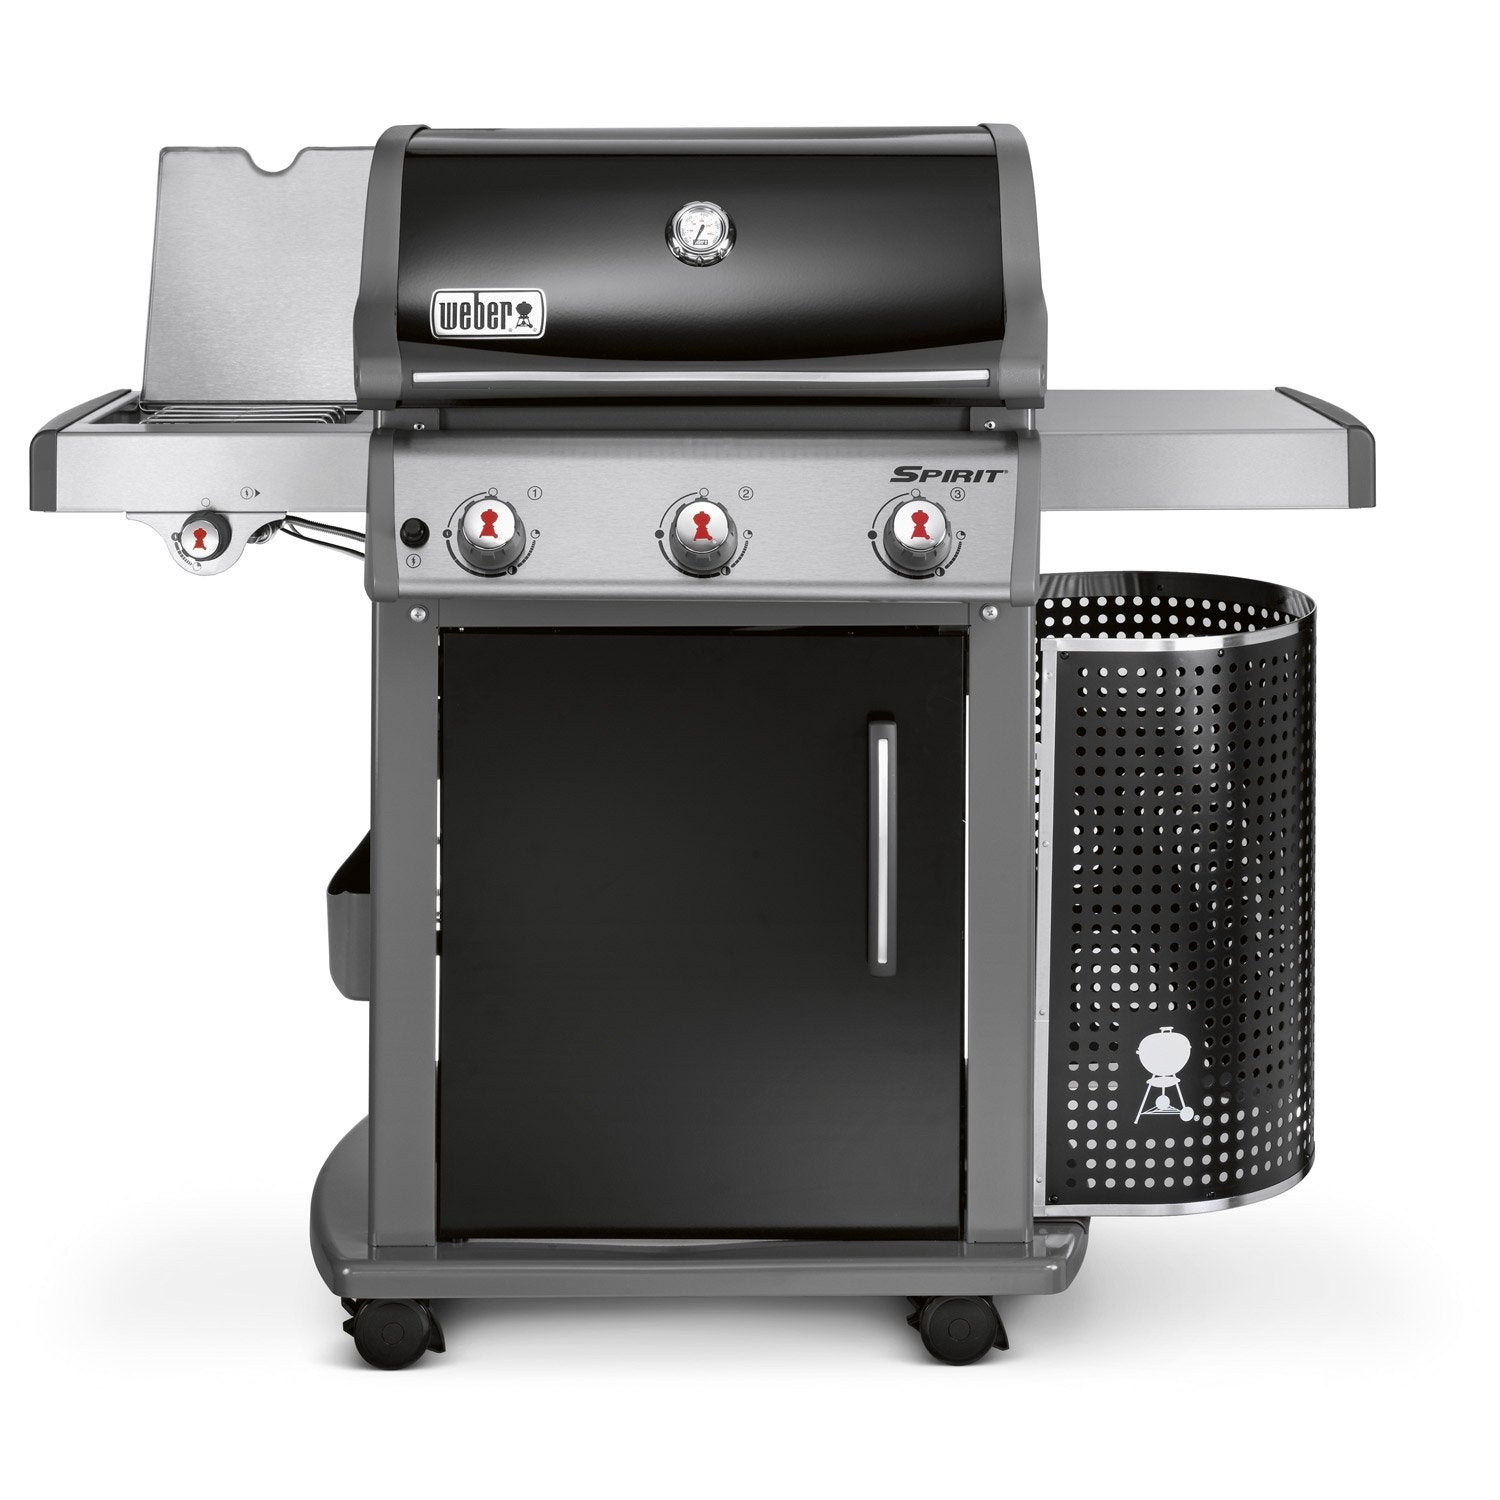 Barbecue au gaz weber spirit e320 black leroy merlin for Barbecue weber gaz q120